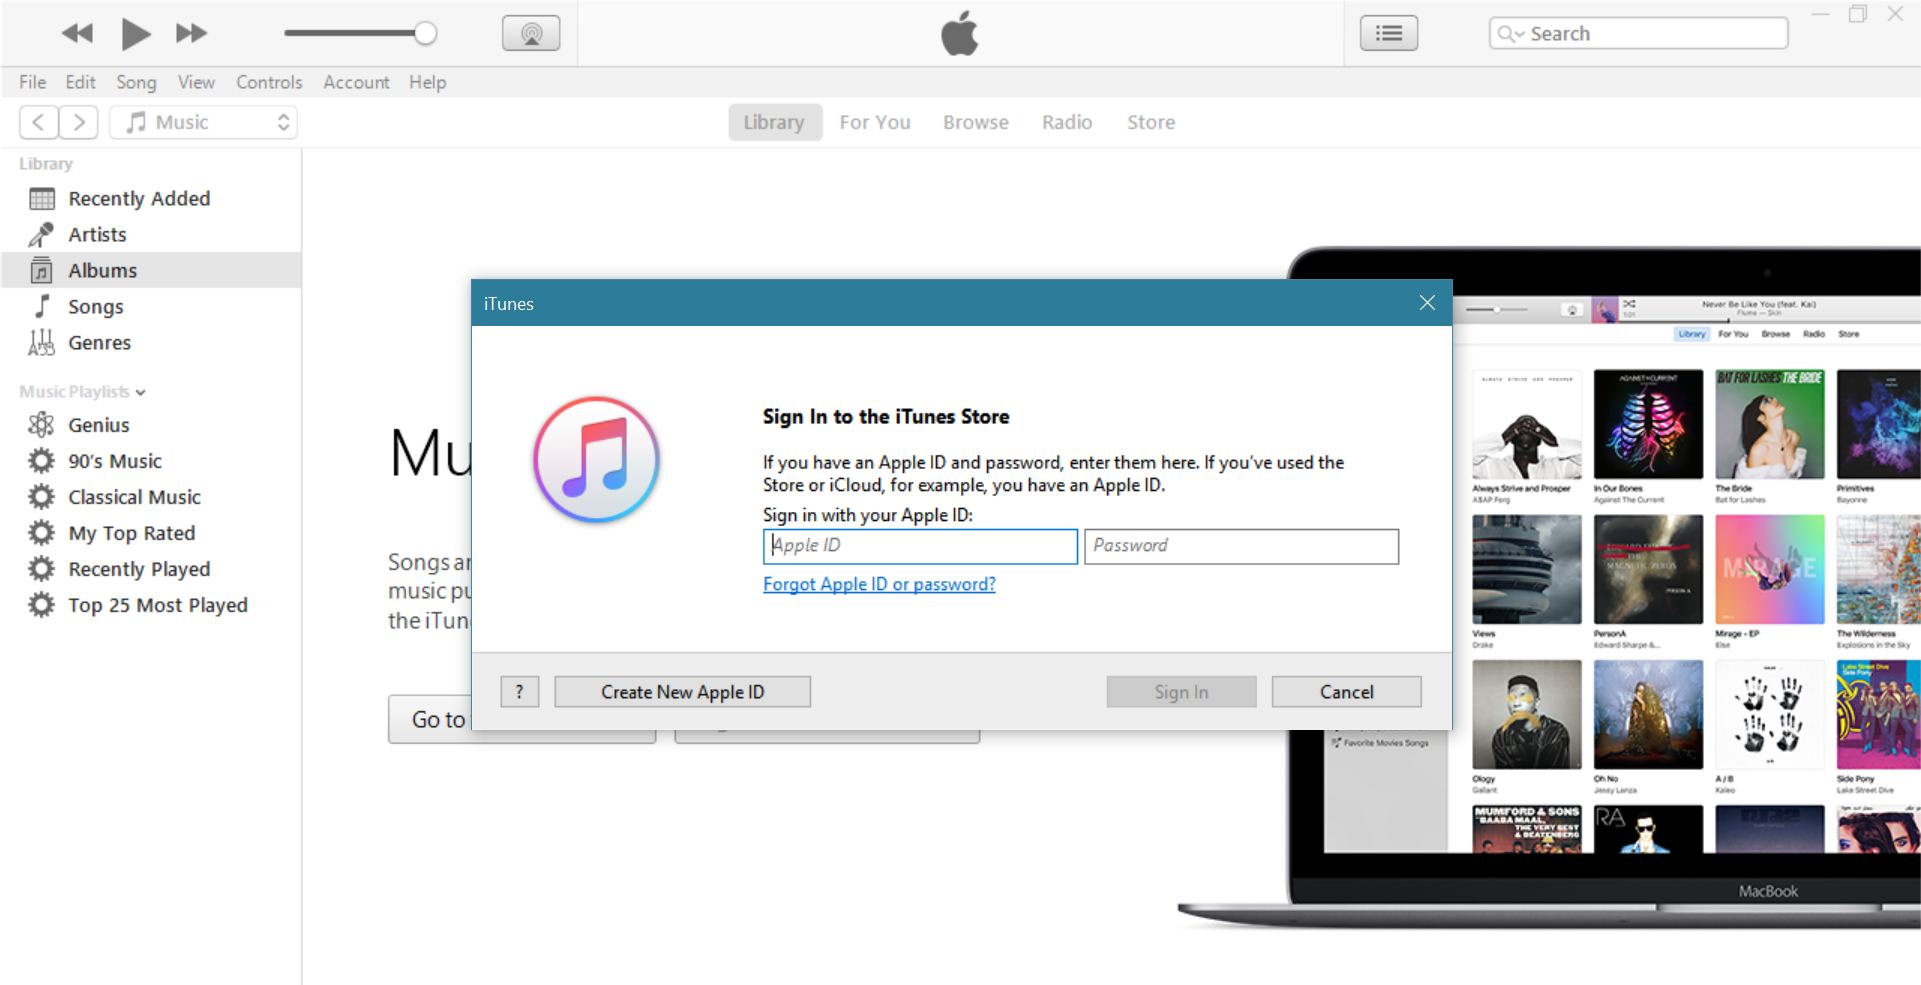 Download iTunes for Windows 10 [Free] - How To Install And Use